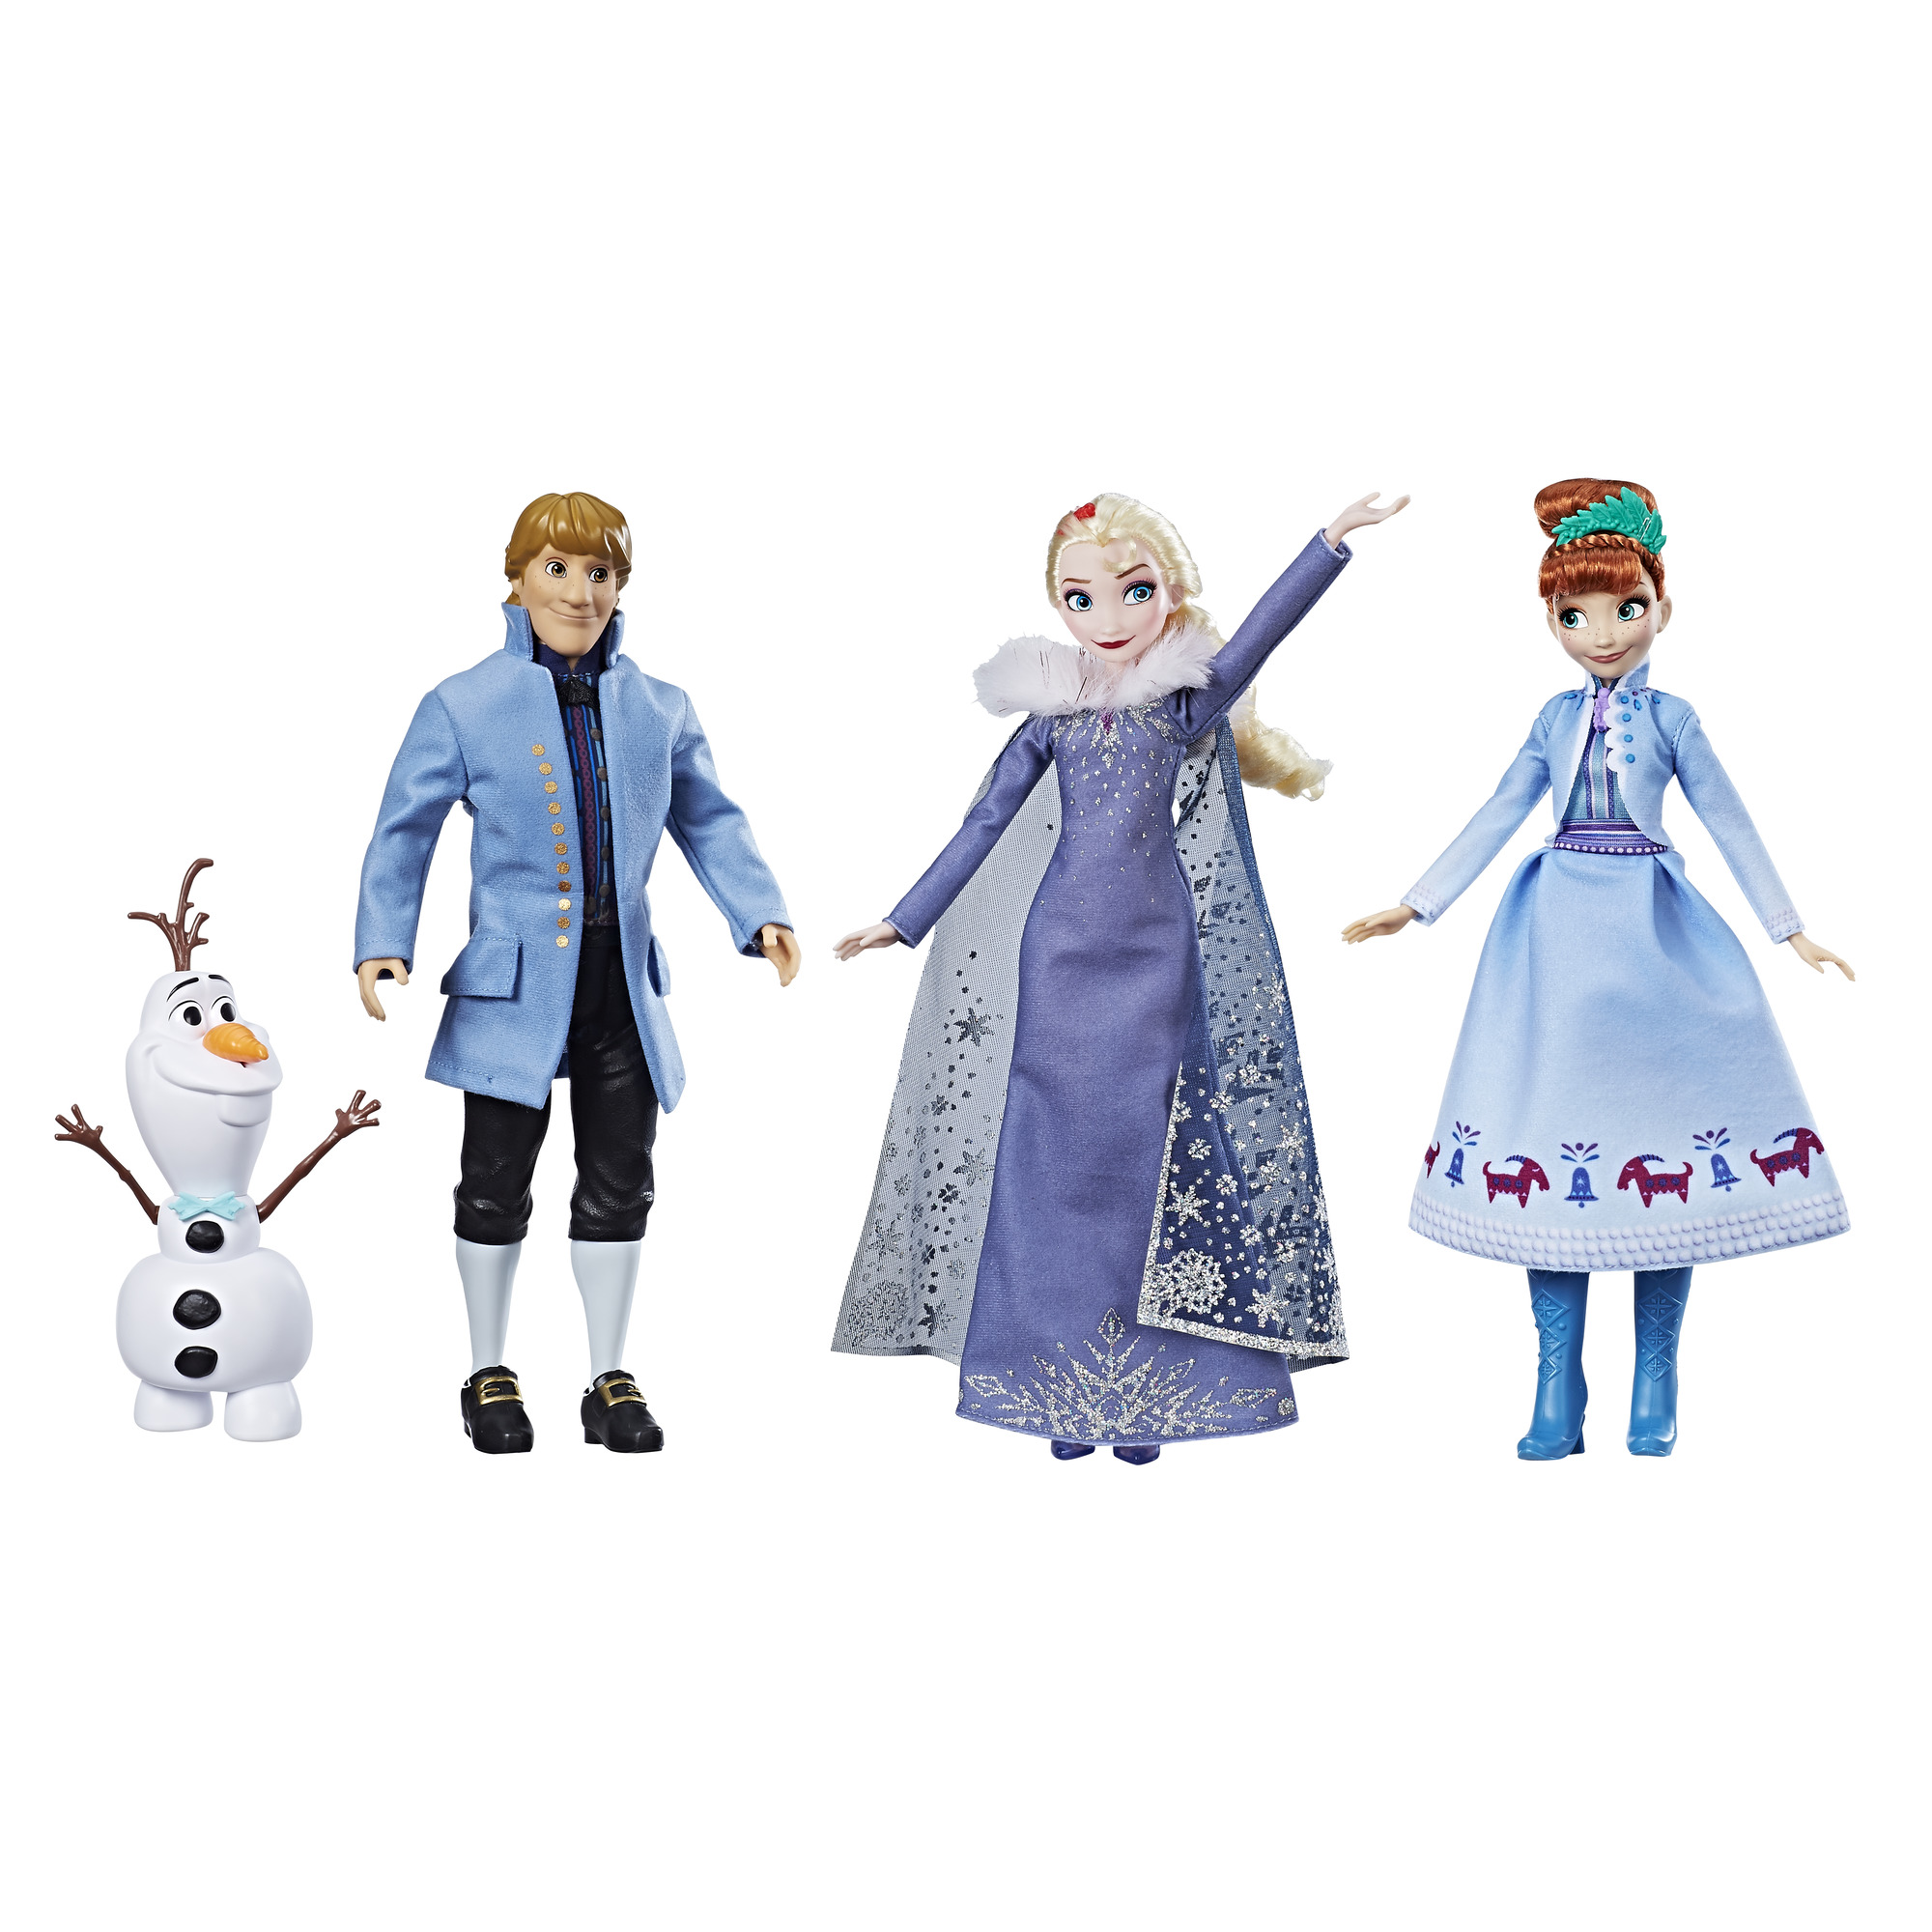 Disney Frozen Festive Friends Collection by Hasbro